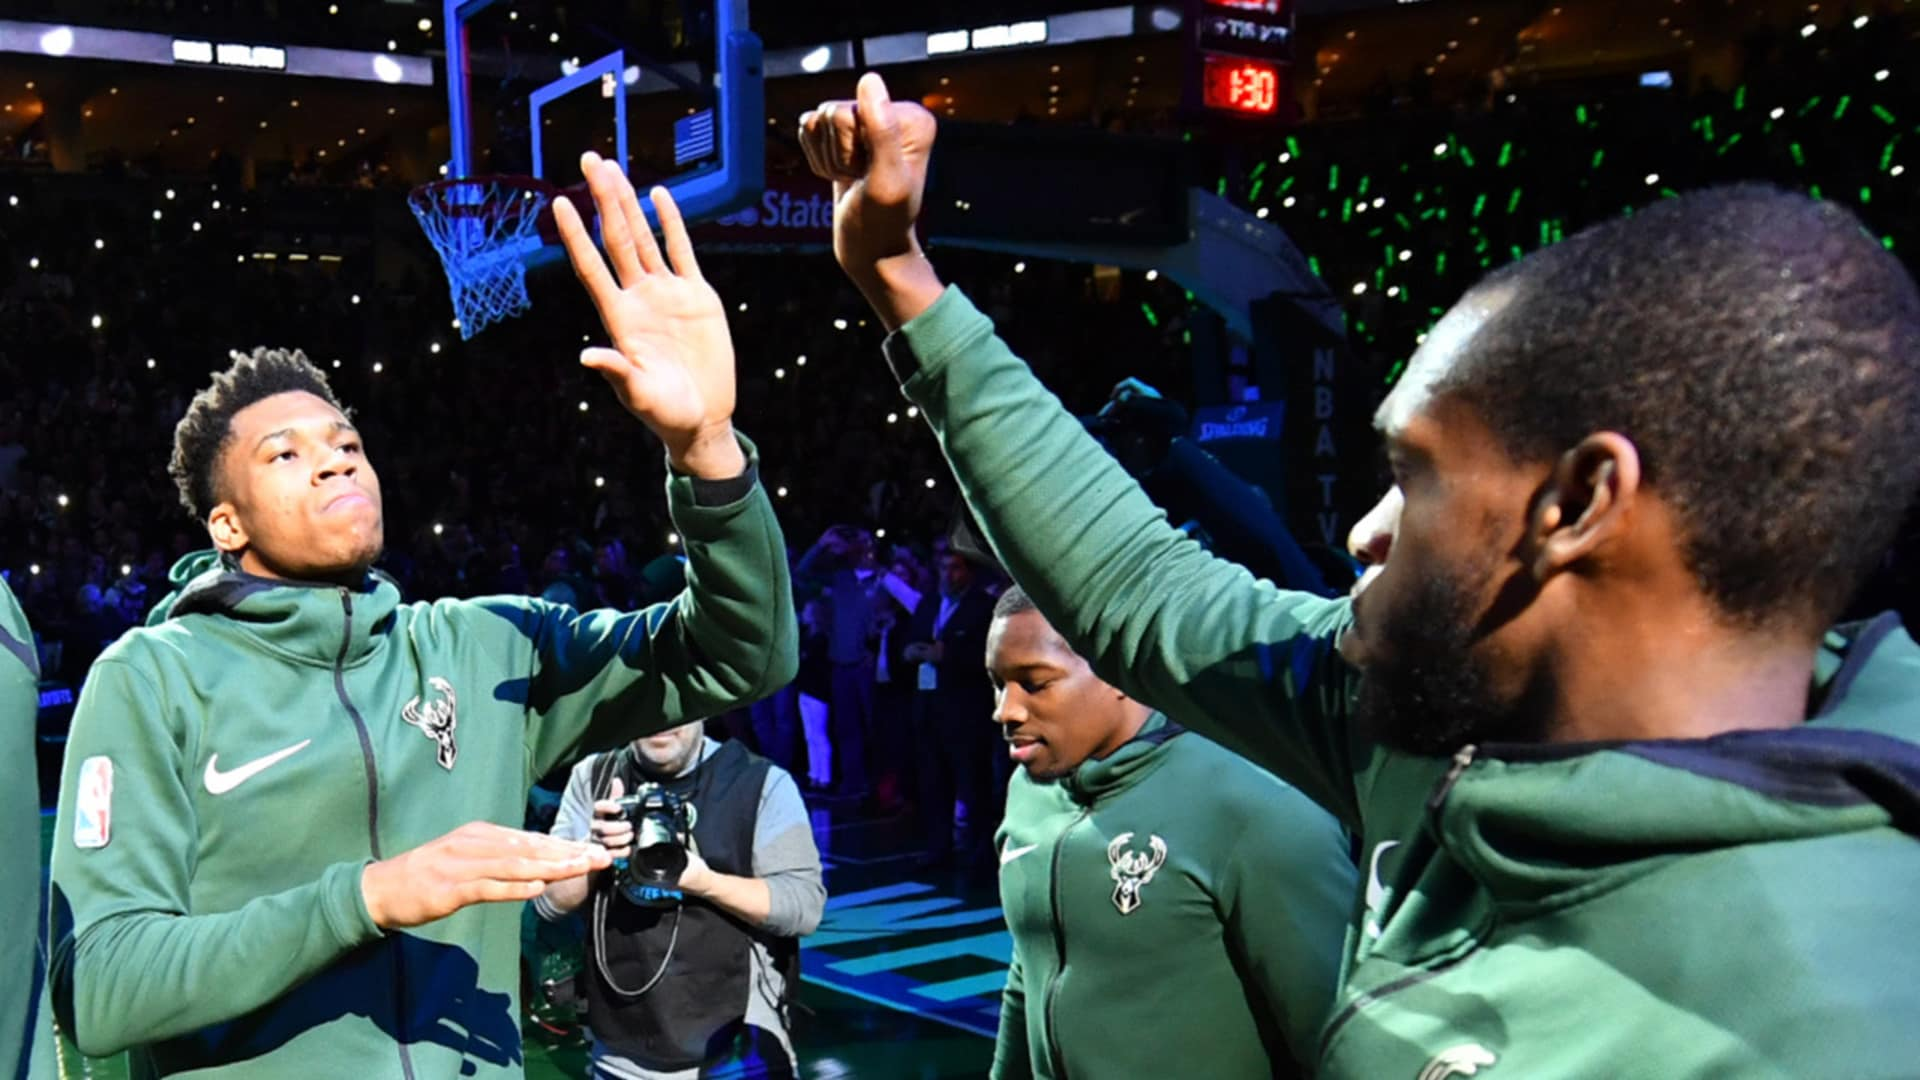 On This Date: Bucks Win Final Game At BMO Harris Bradley Center | 4.26.18